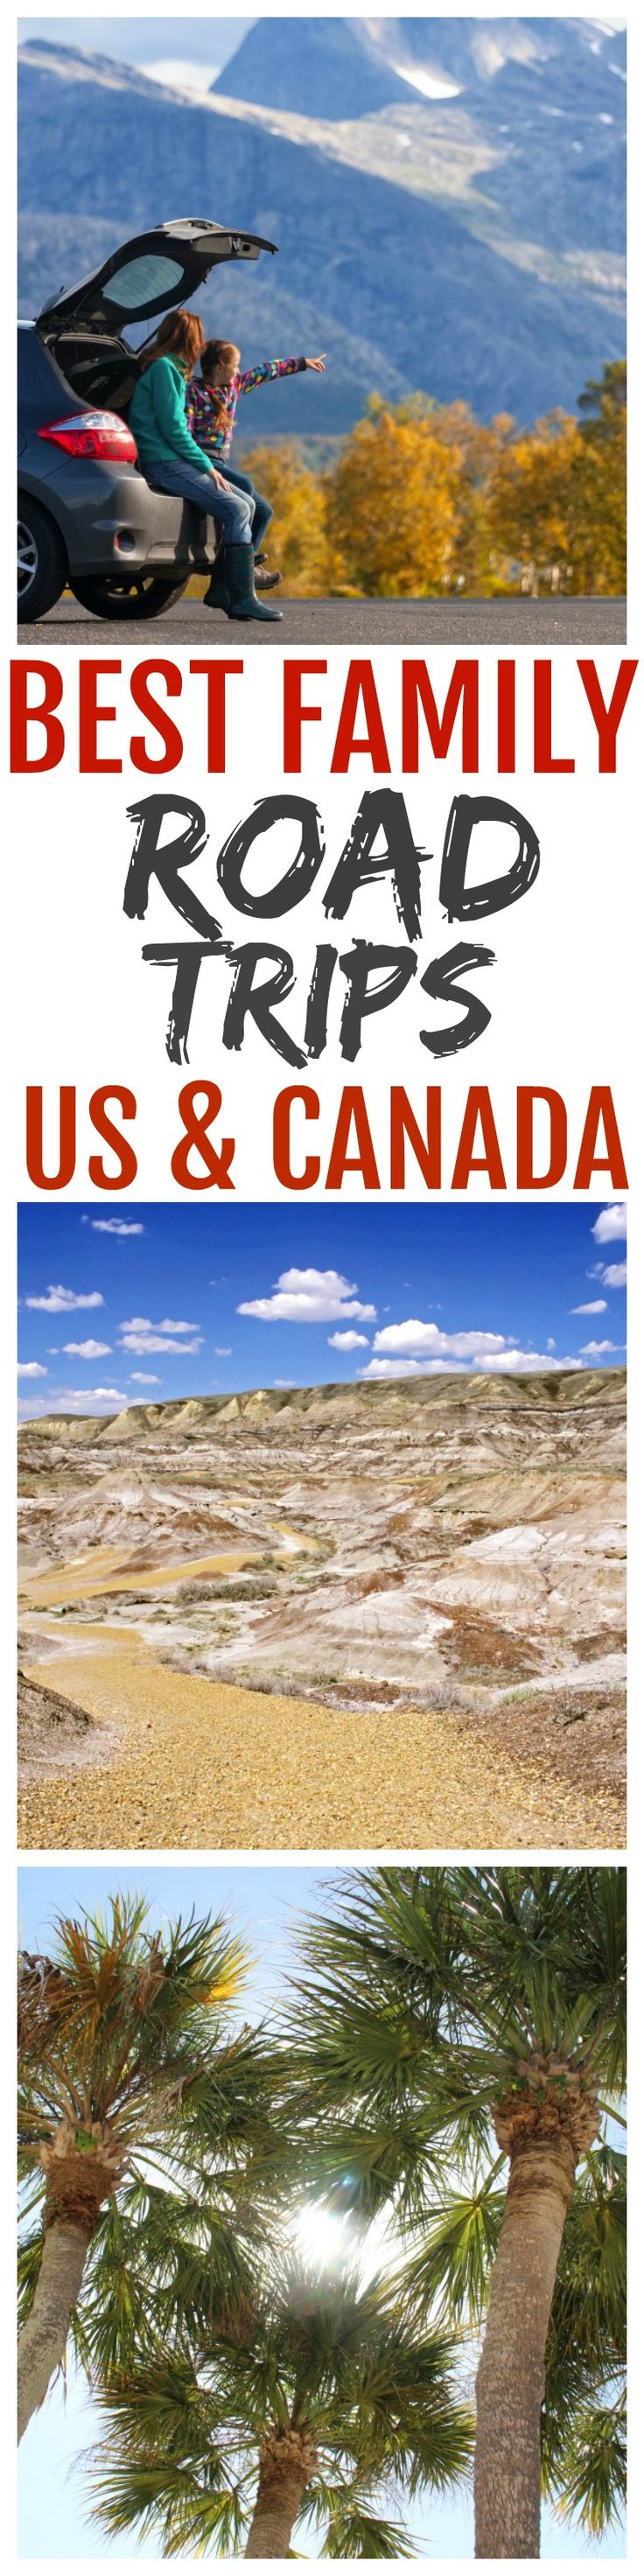 Best Family Road Trips in the US and Canada - Family Food And Travel